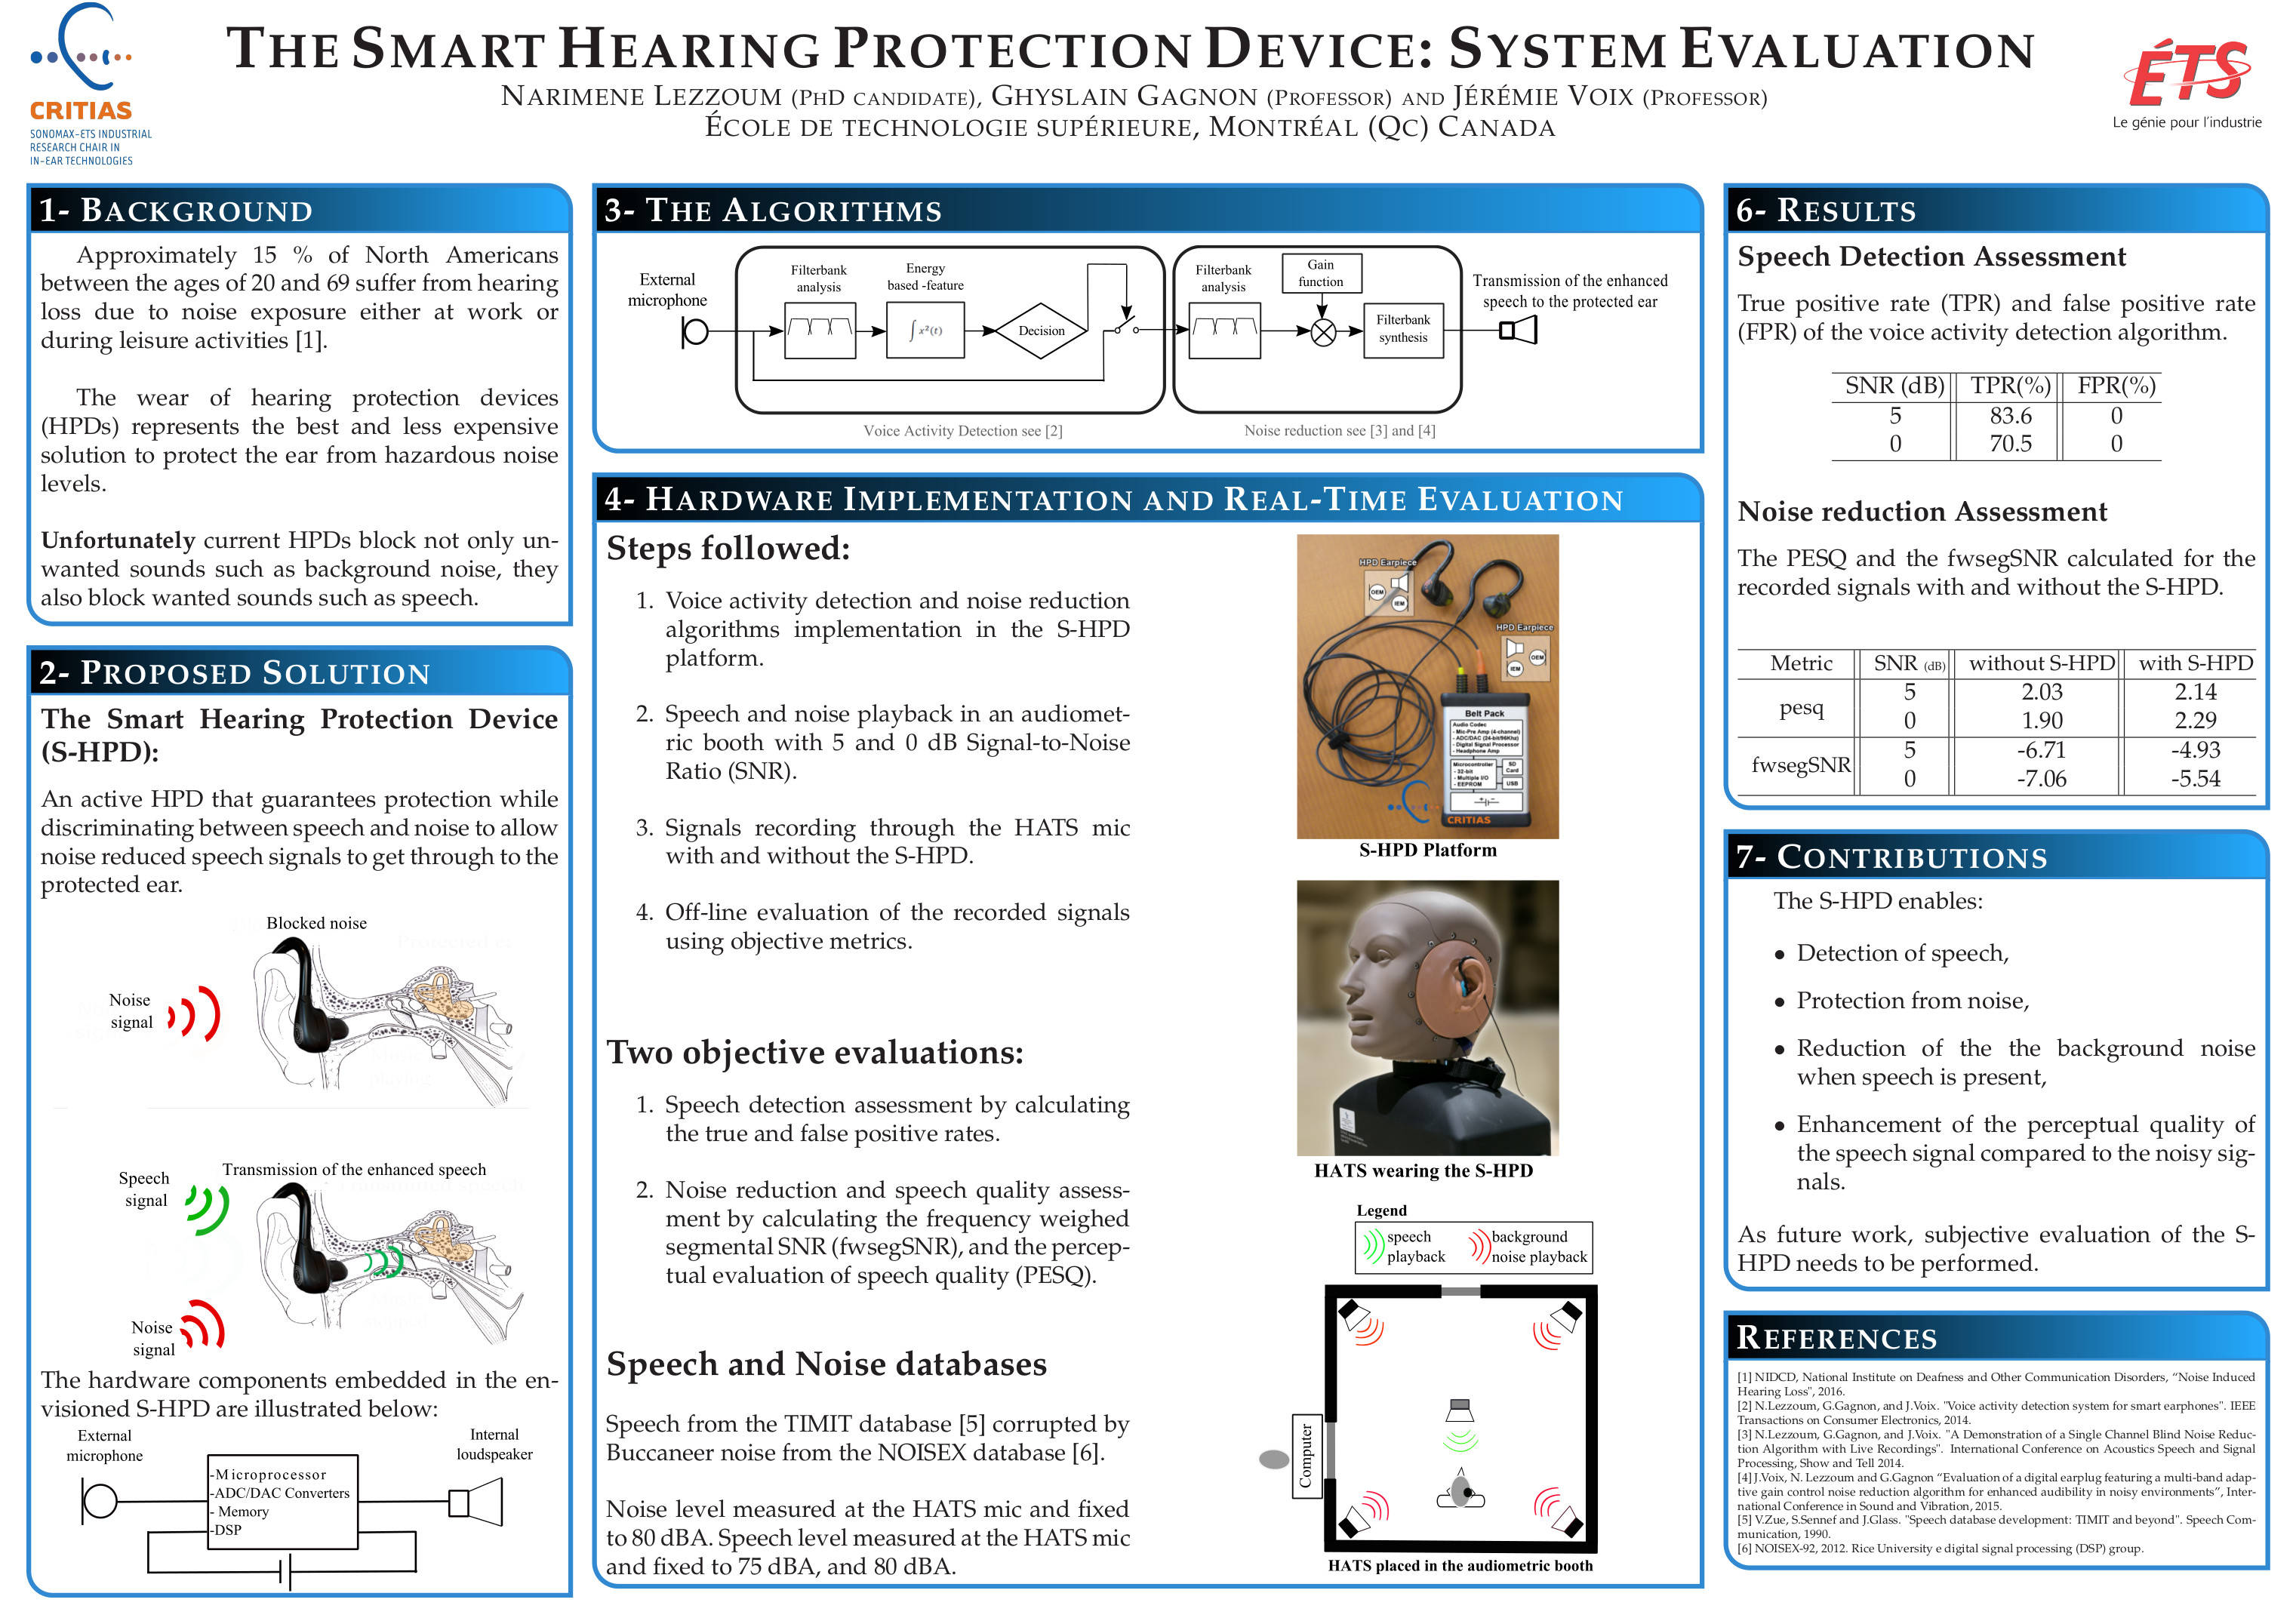 Narimene Lezzoum et al. - 2016 - The Smart Hearing Protection Device System Evaluation